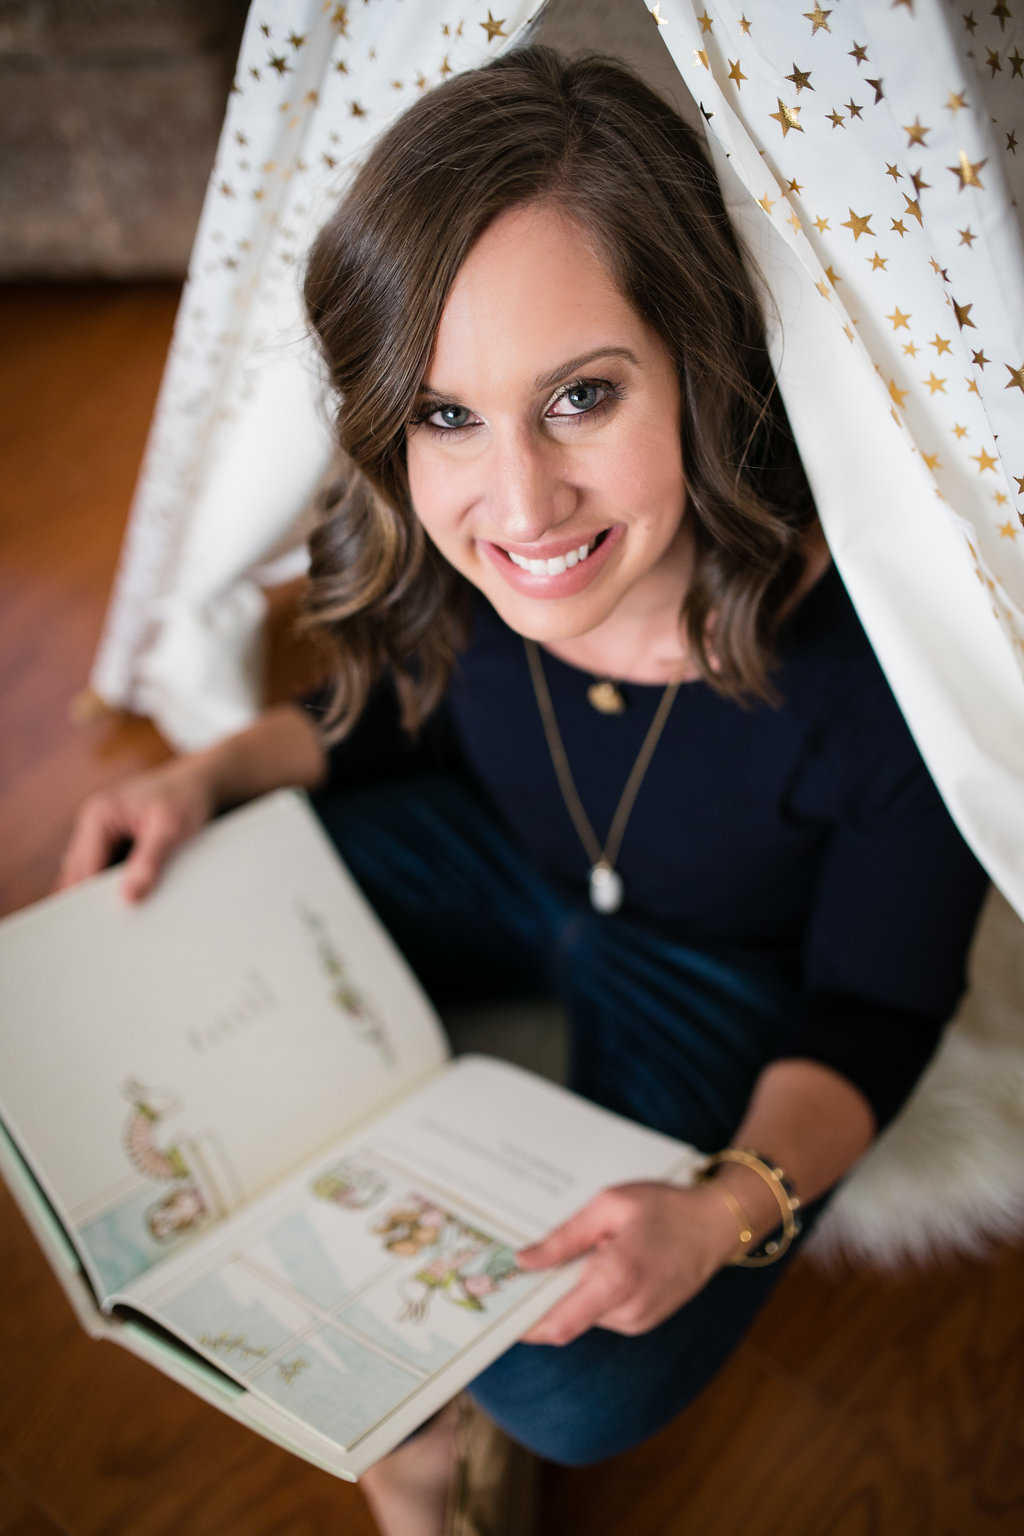 Meet Kim Creigh of Creative Reading Adventures